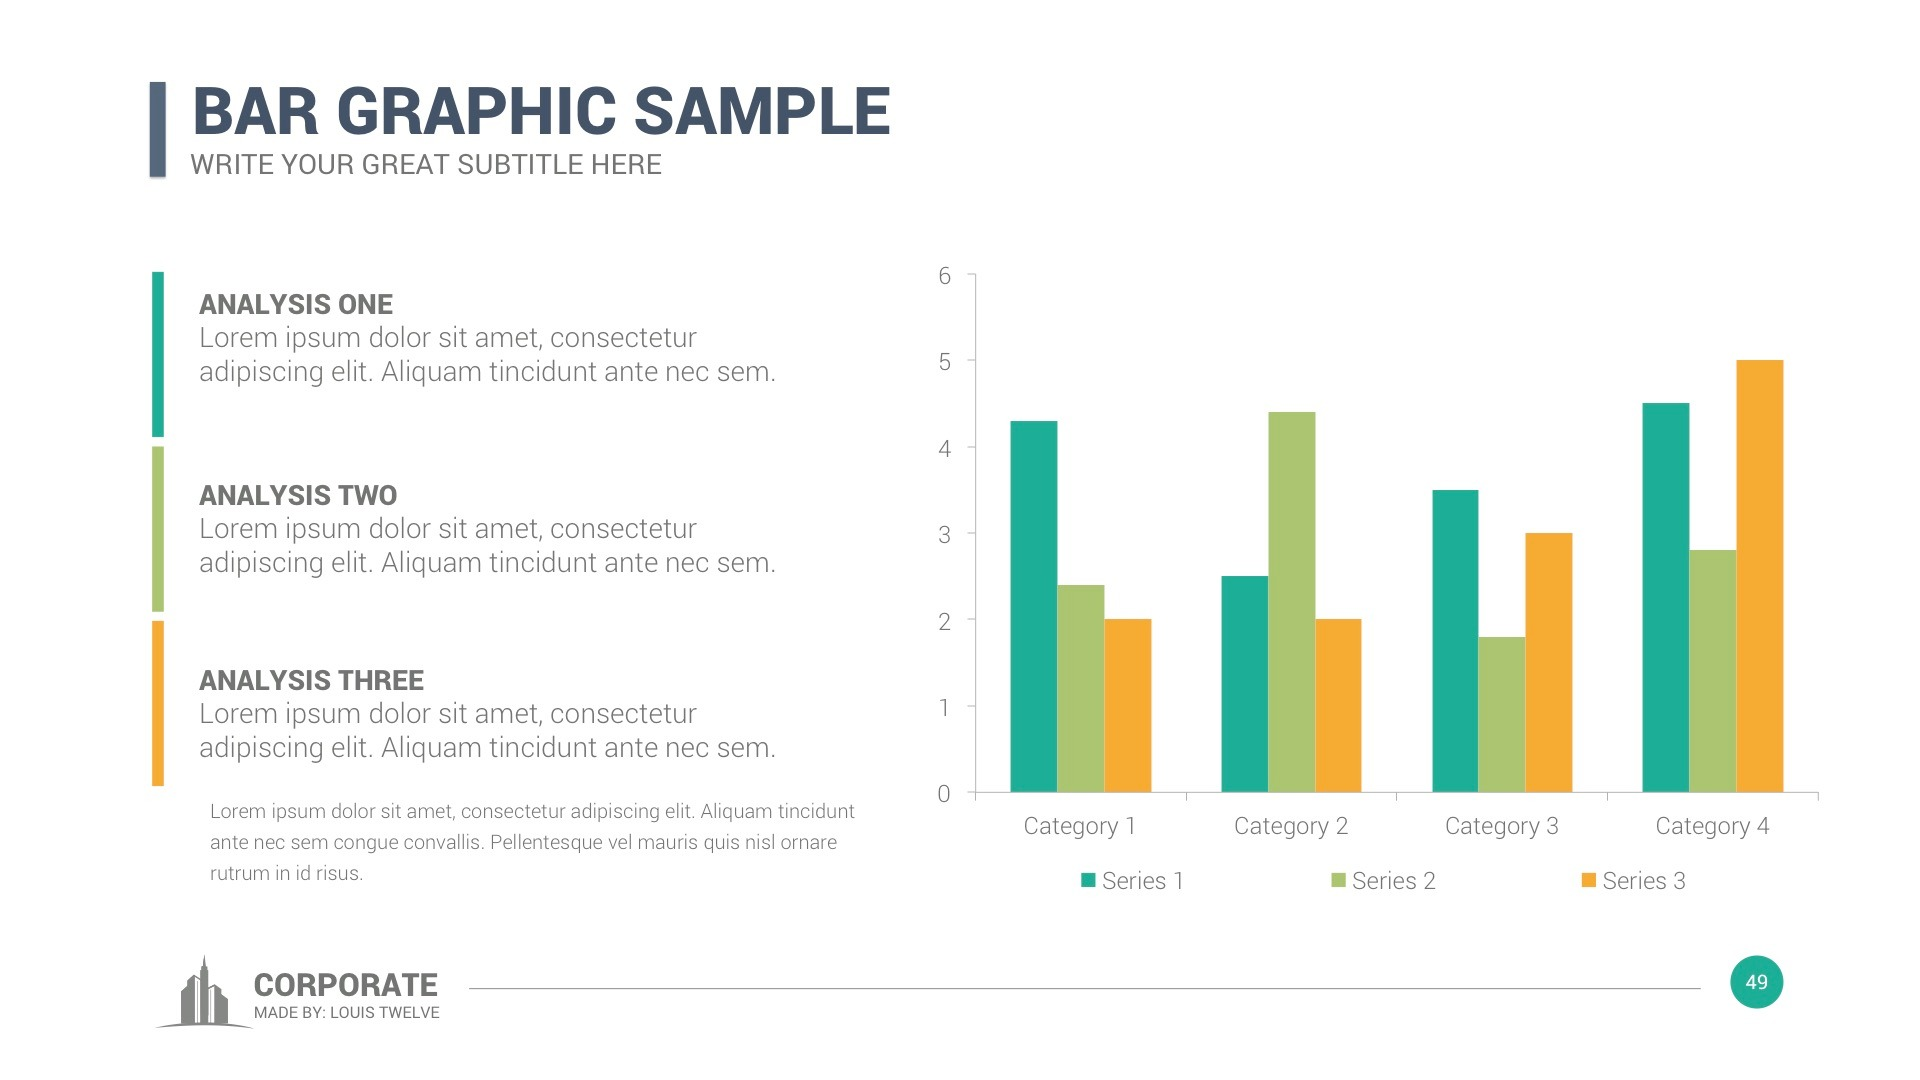 Corporate overview powerpoint template by louistwelve design corporate overview powerpoint template toneelgroepblik Image collections